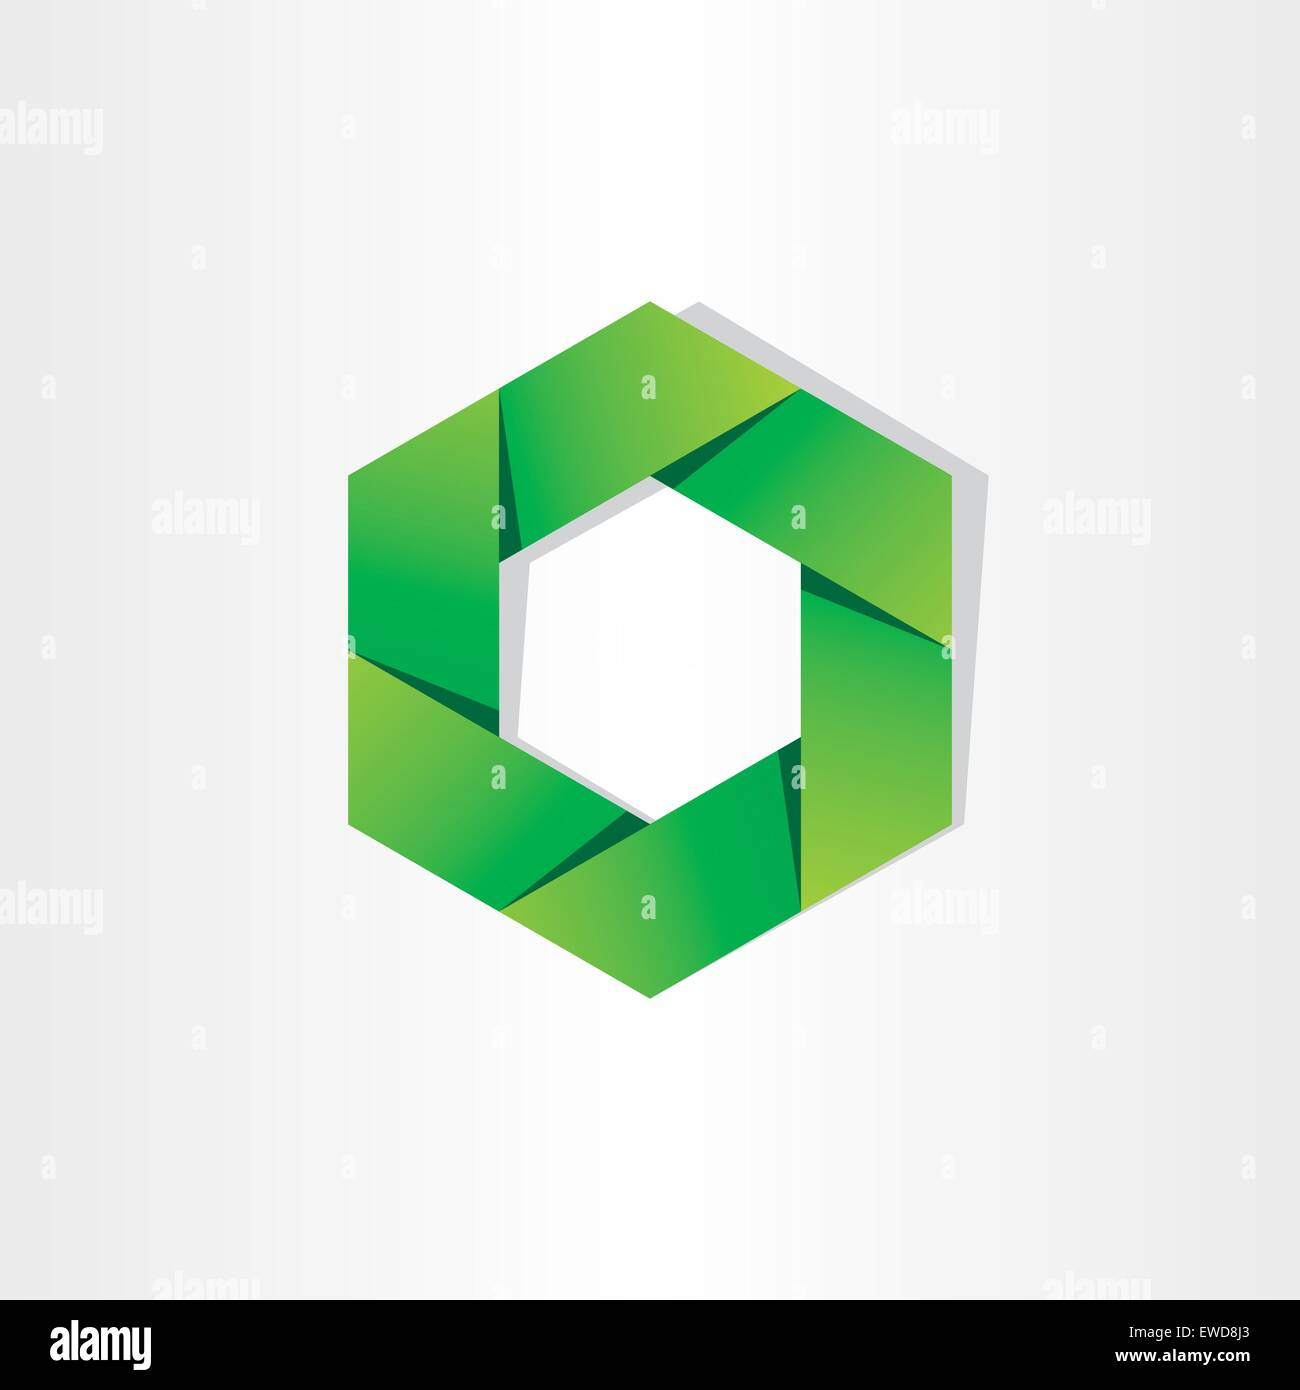 Green Hexagon Eco Symbol Abstract Background Design Stock